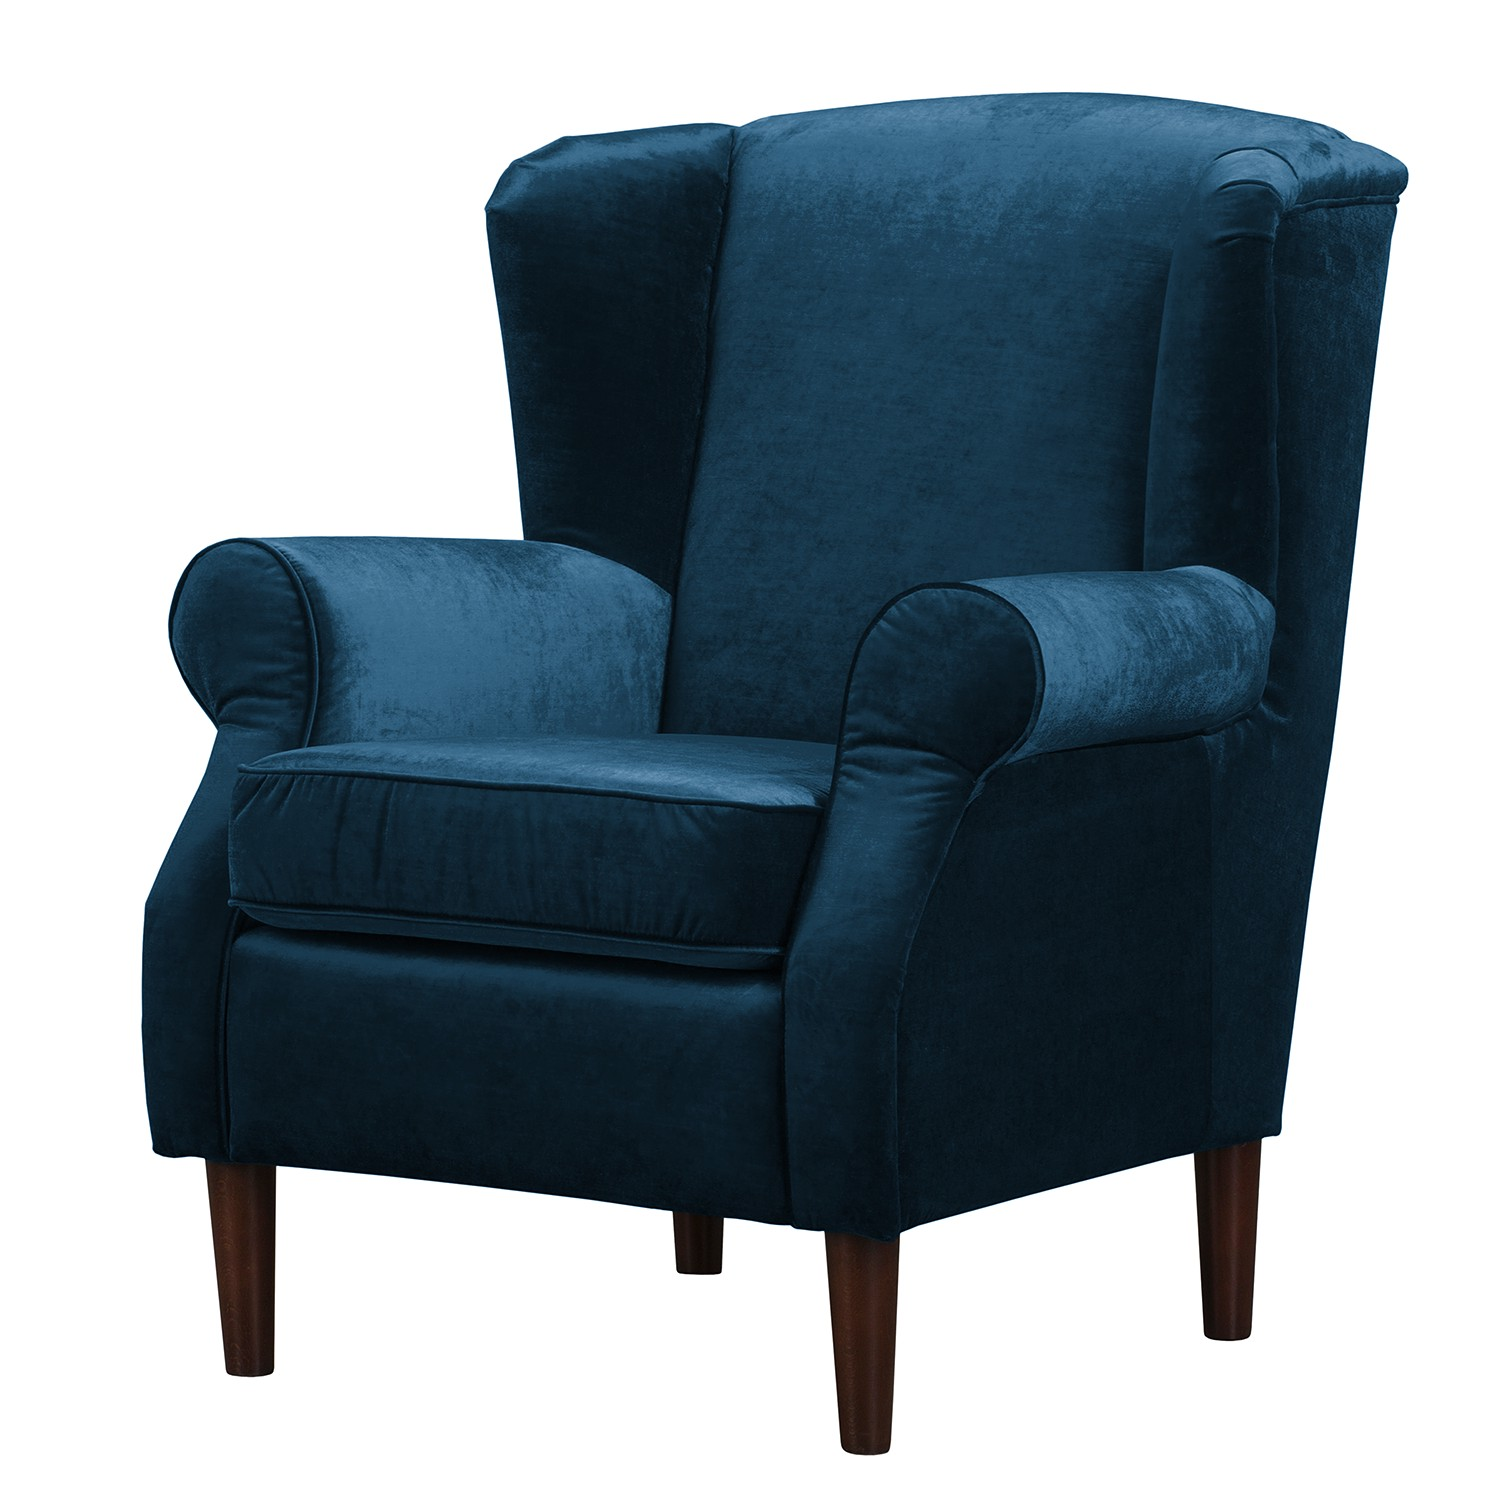 Home24 Oorfauteuil Luoto, home24